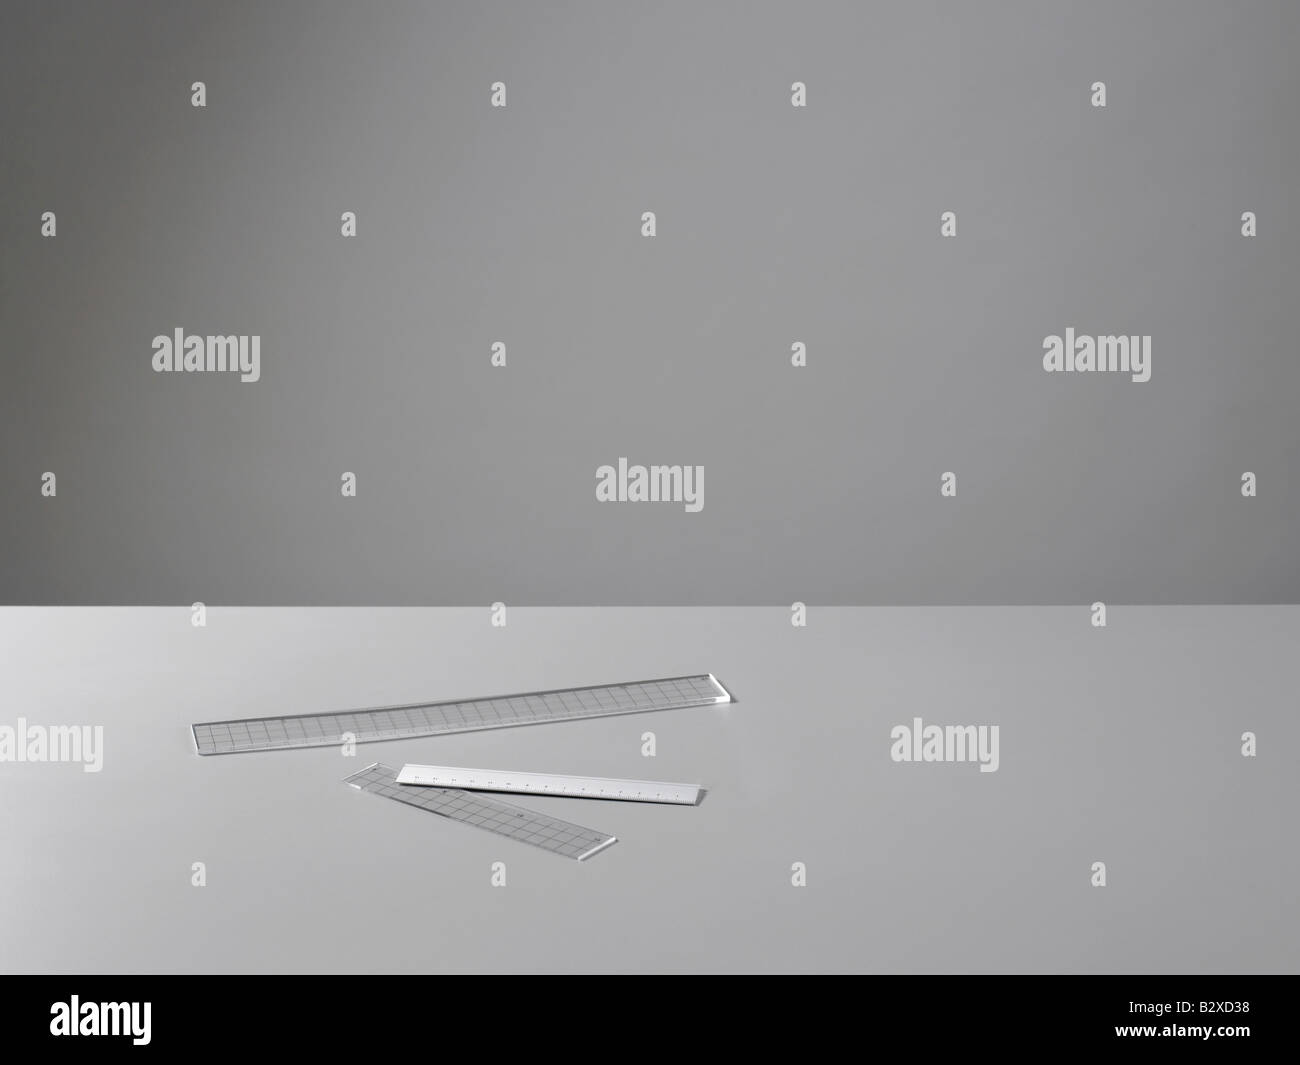 rulers on grey background - Stock Image